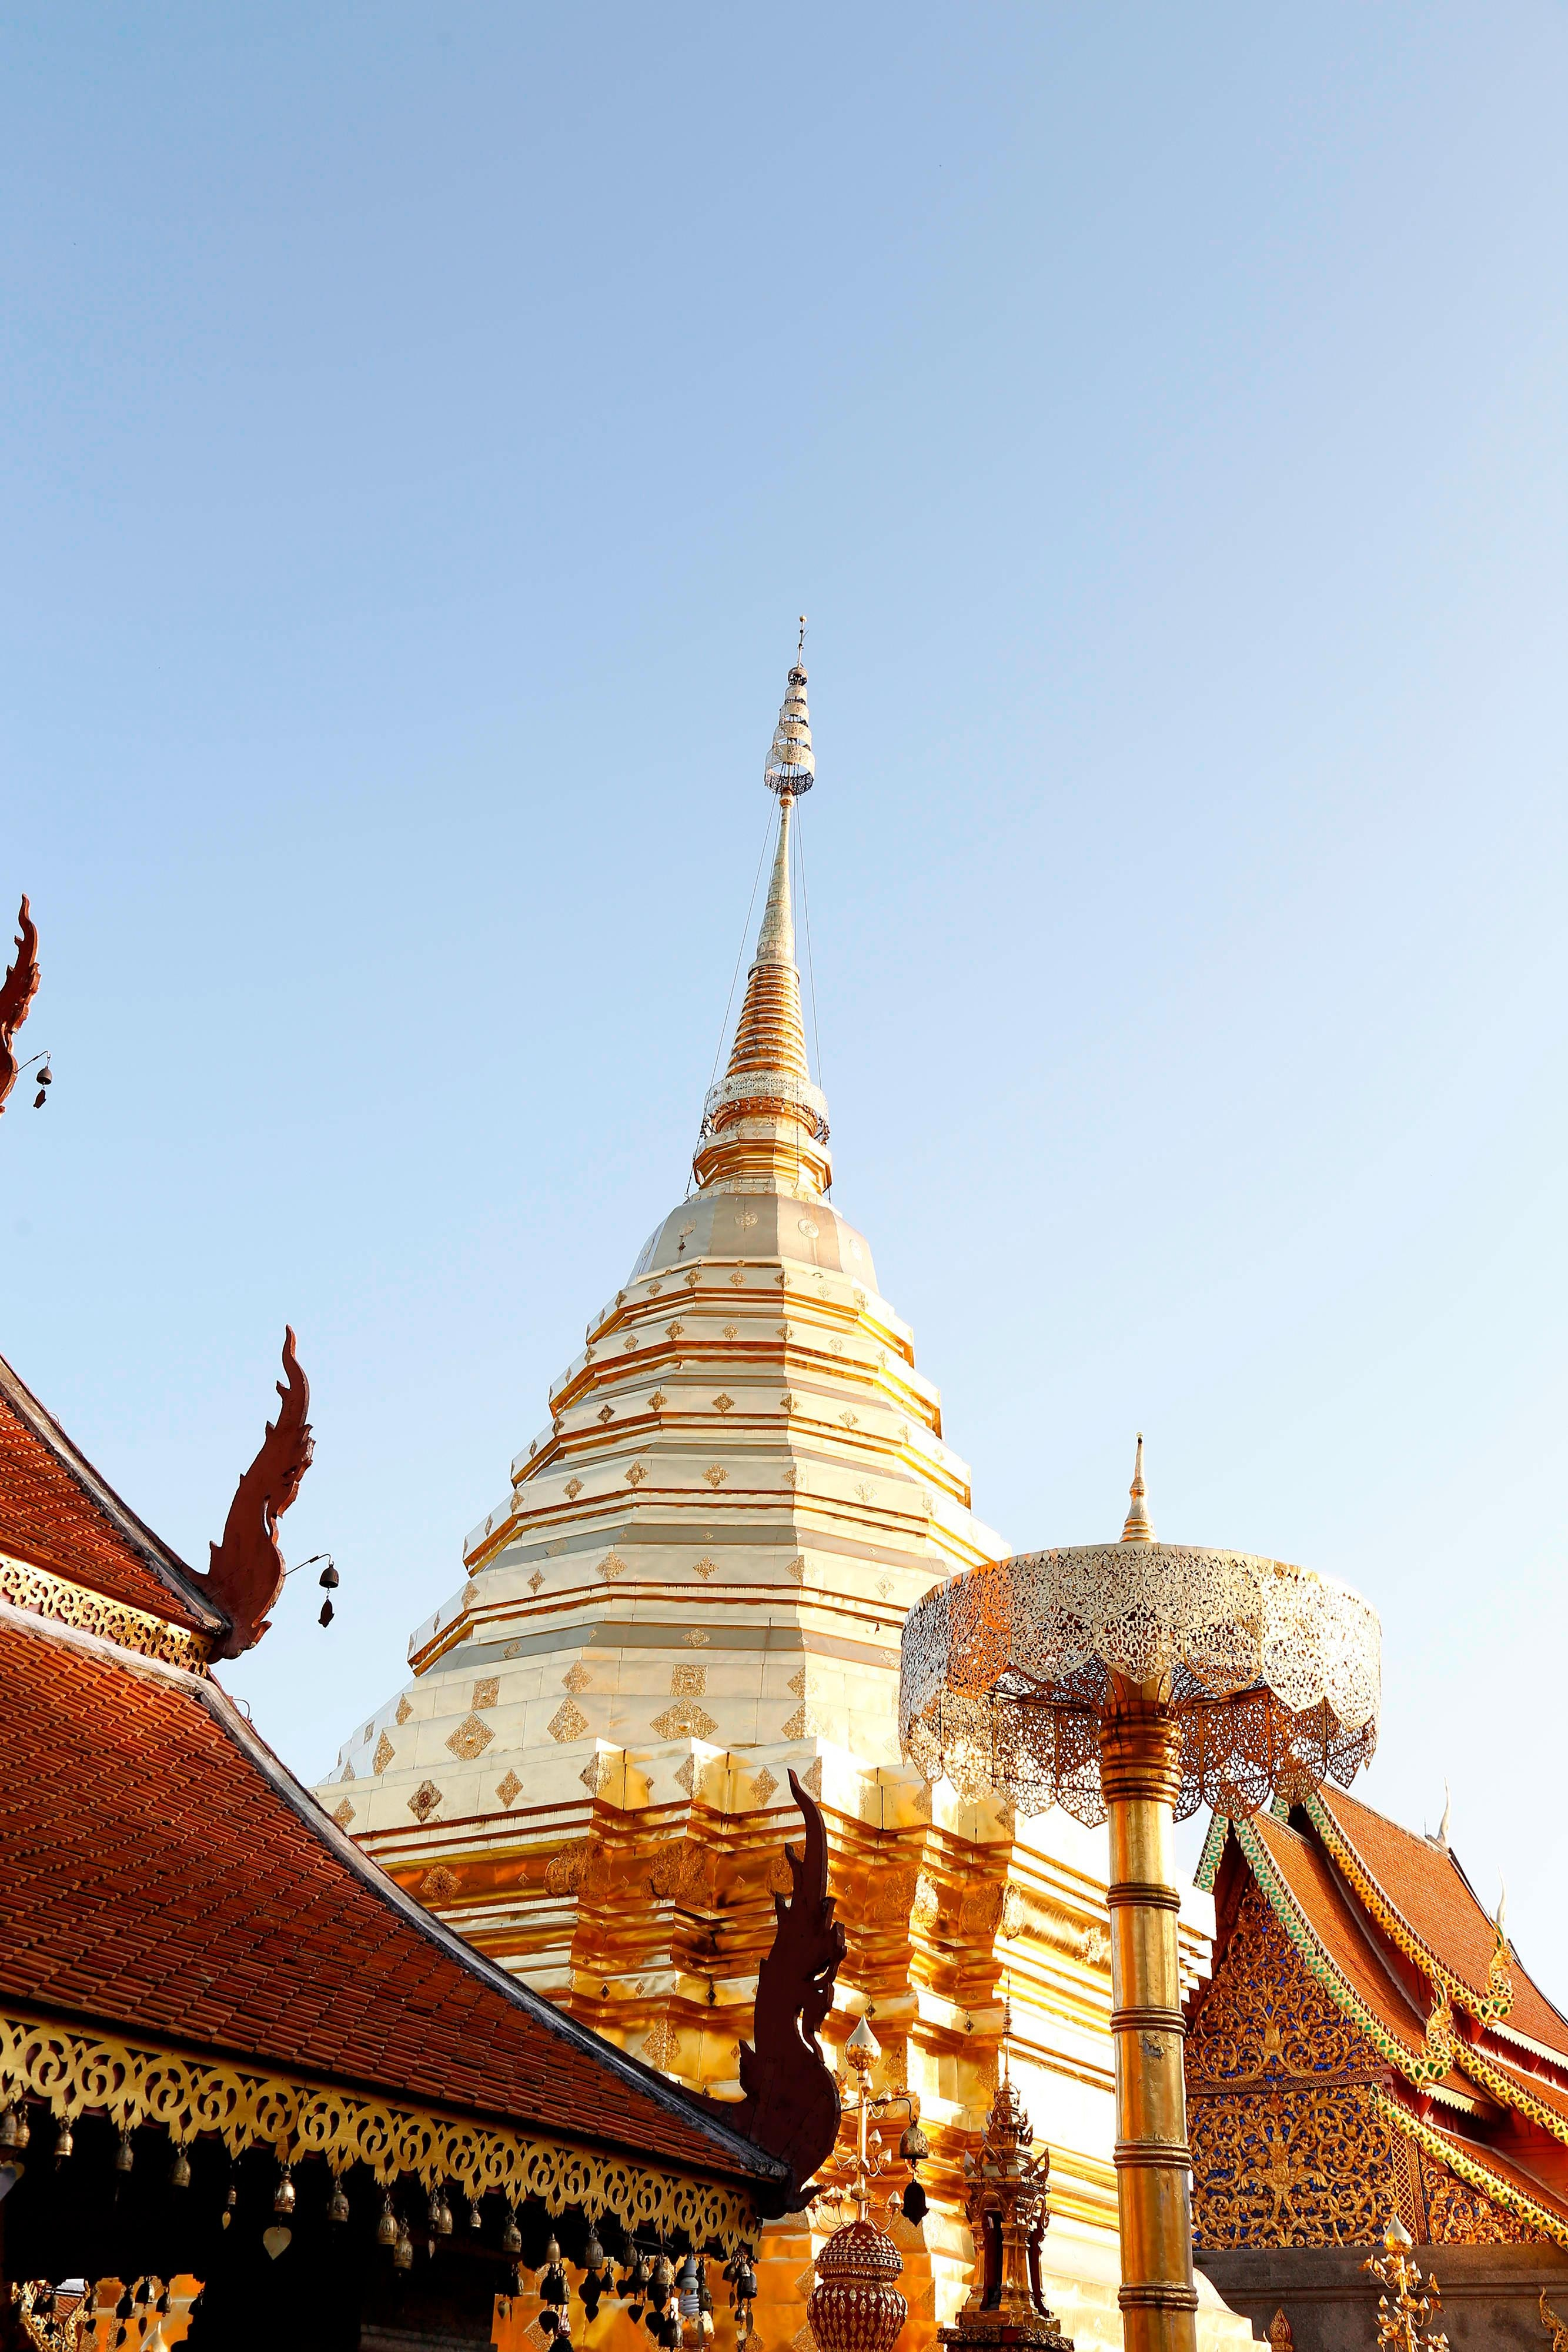 Phra That Doi Suthep temple